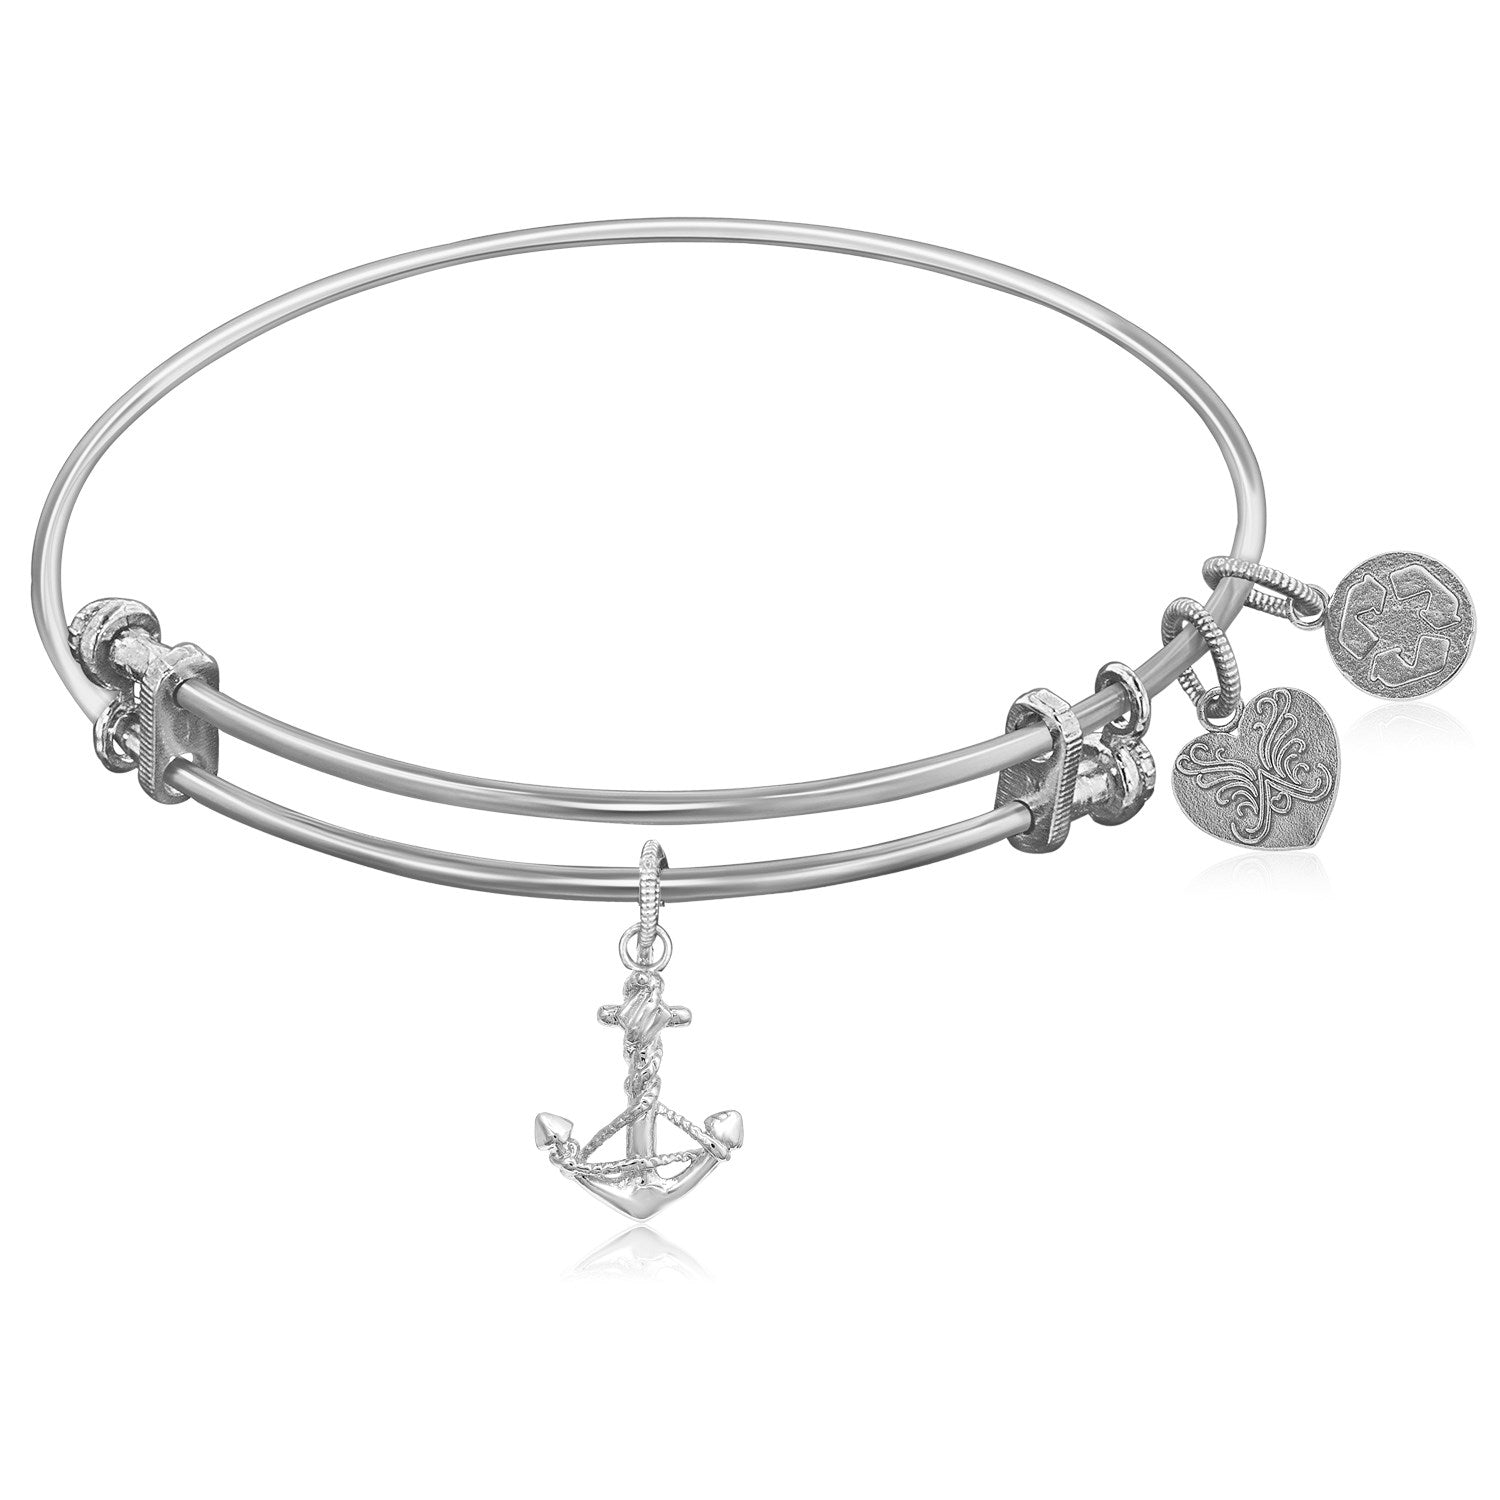 Modern New York Style Unique Expandable White Tone Brass Bangle with Anchor Symbol